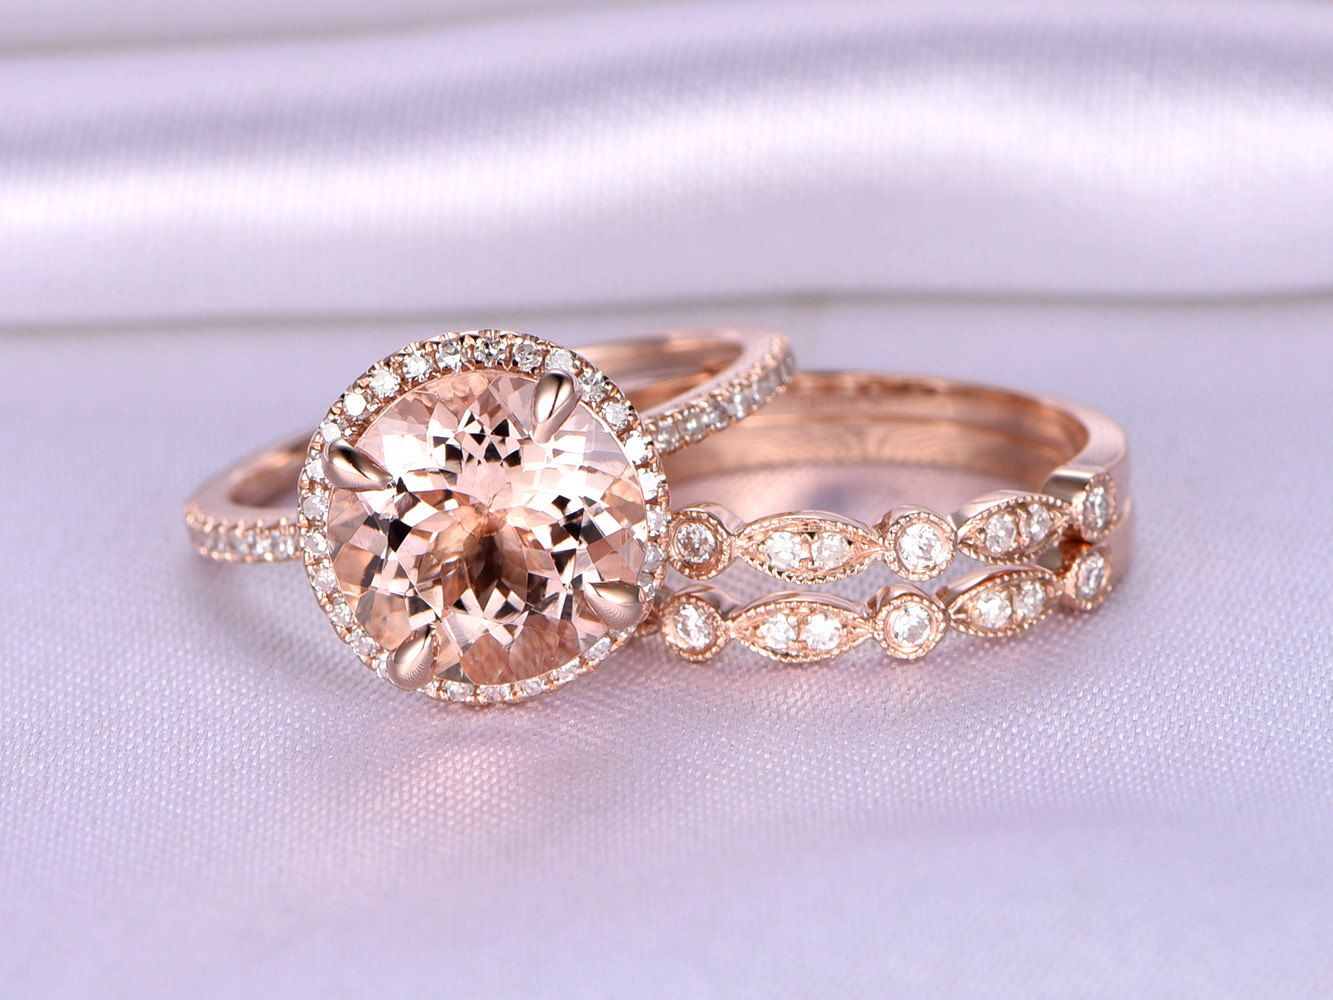 3pcs 9mm Big Morganite Wedding Ring Set,Engagement ring,14k Rose ...